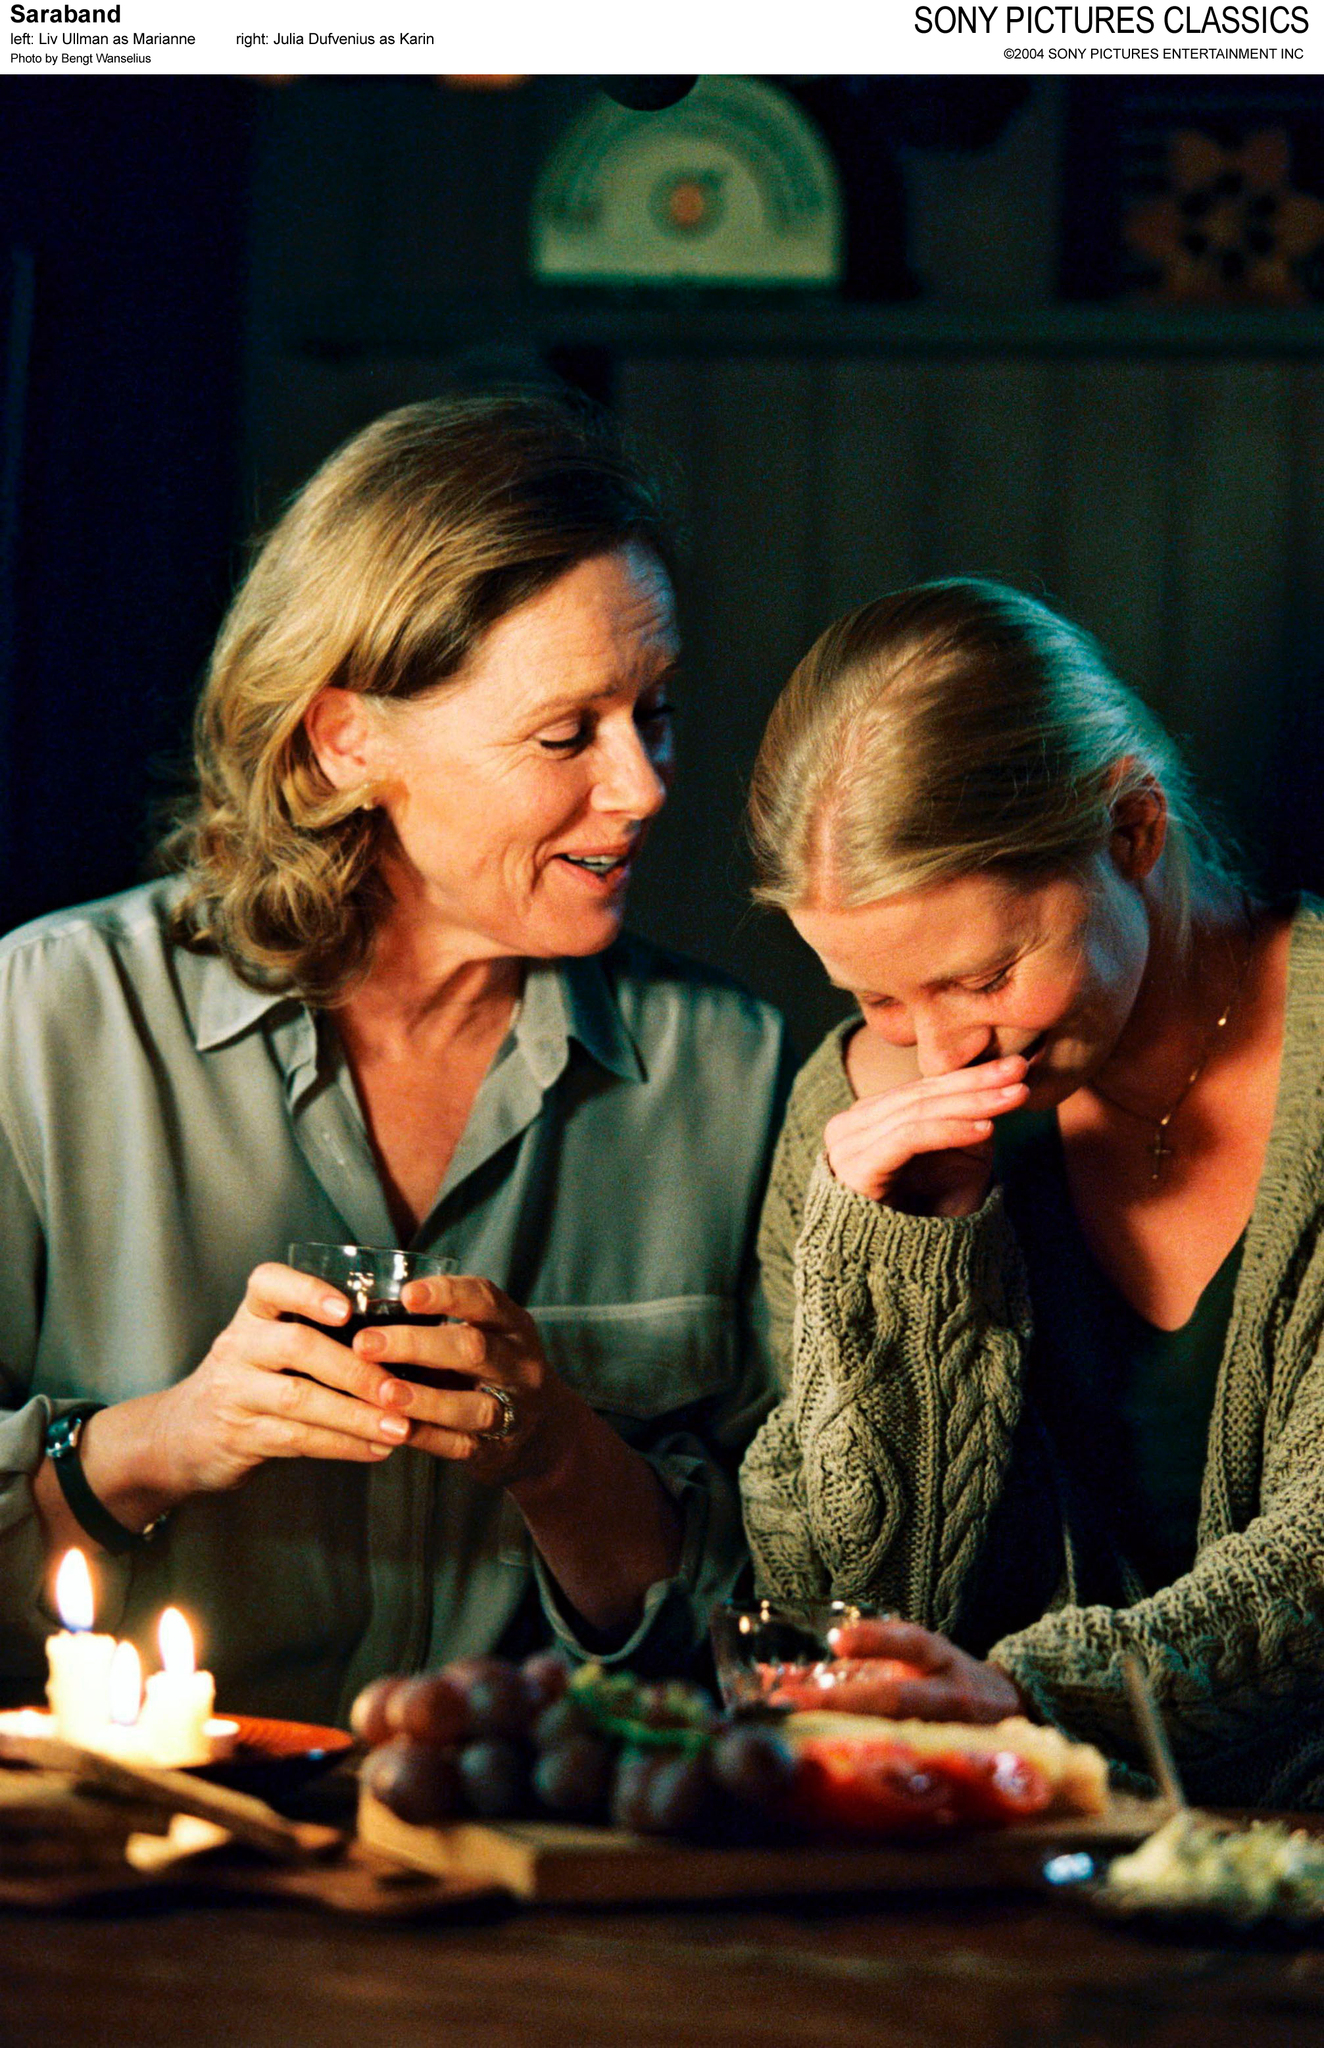 Julia Dufvenius and Liv Ullmann in Saraband (2003)